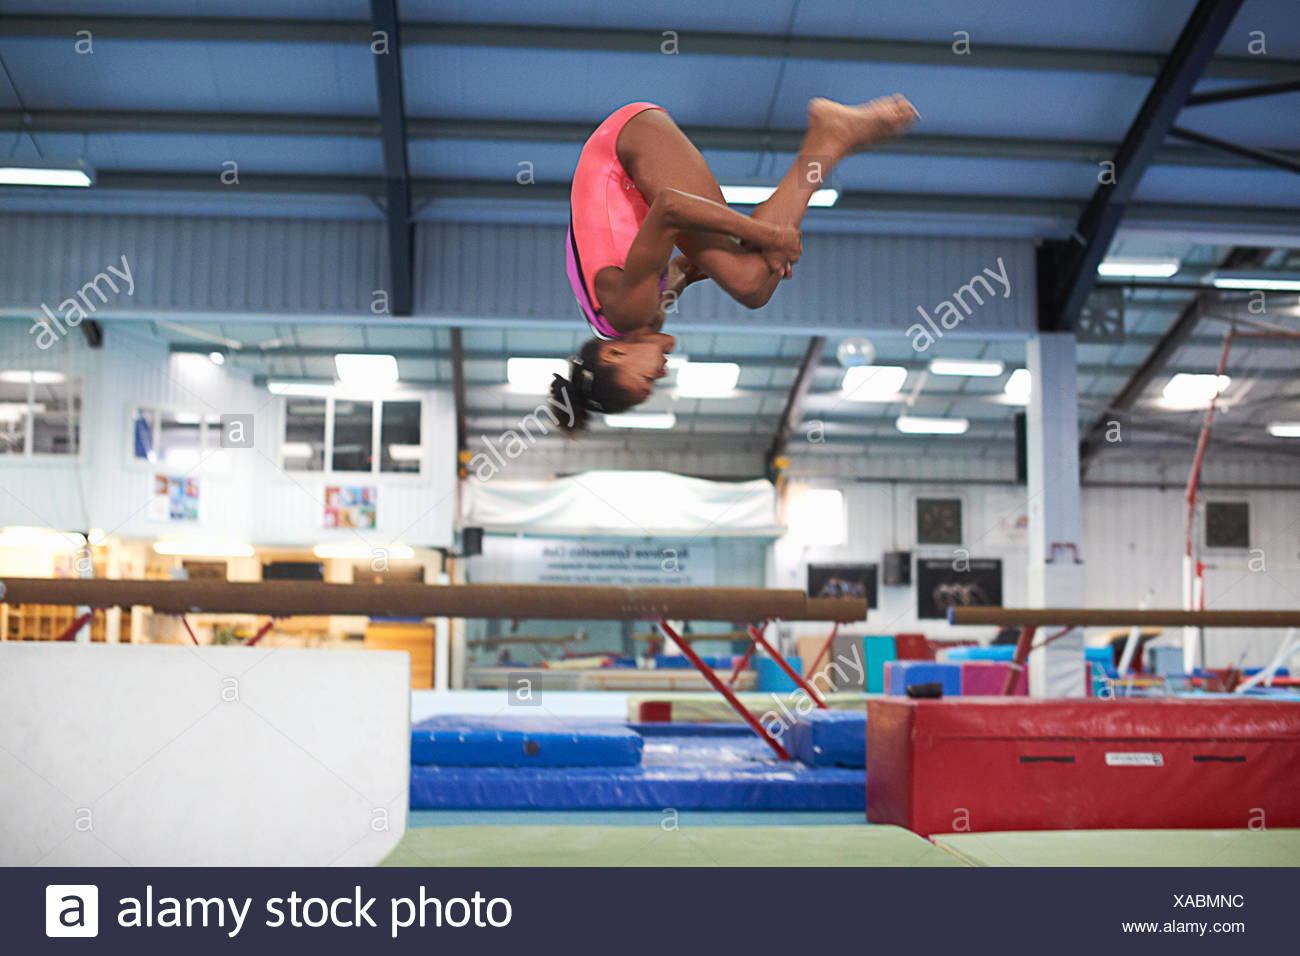 Young gymnast practising moves - Stock Image